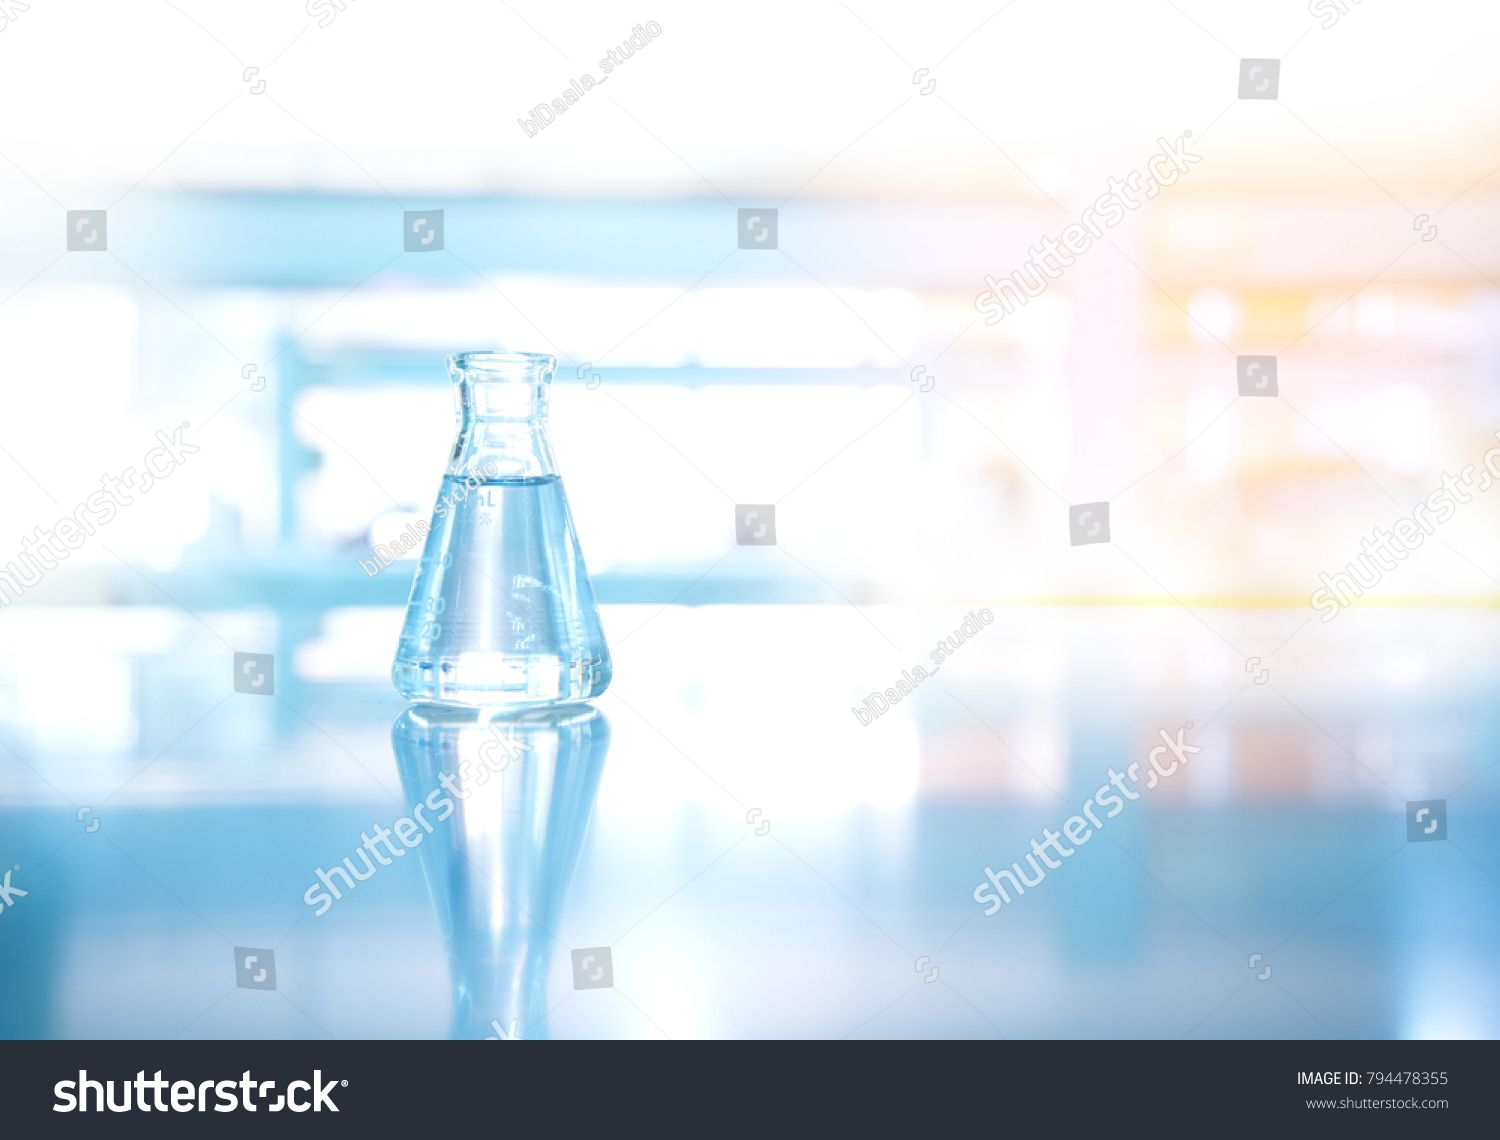 Single Clear Clean Glass Flask With Water In Blue Orange Light Science Technology Laboratory Background Ad Sponsored Glass Flask Water S Glass Flask Flask Light Orange